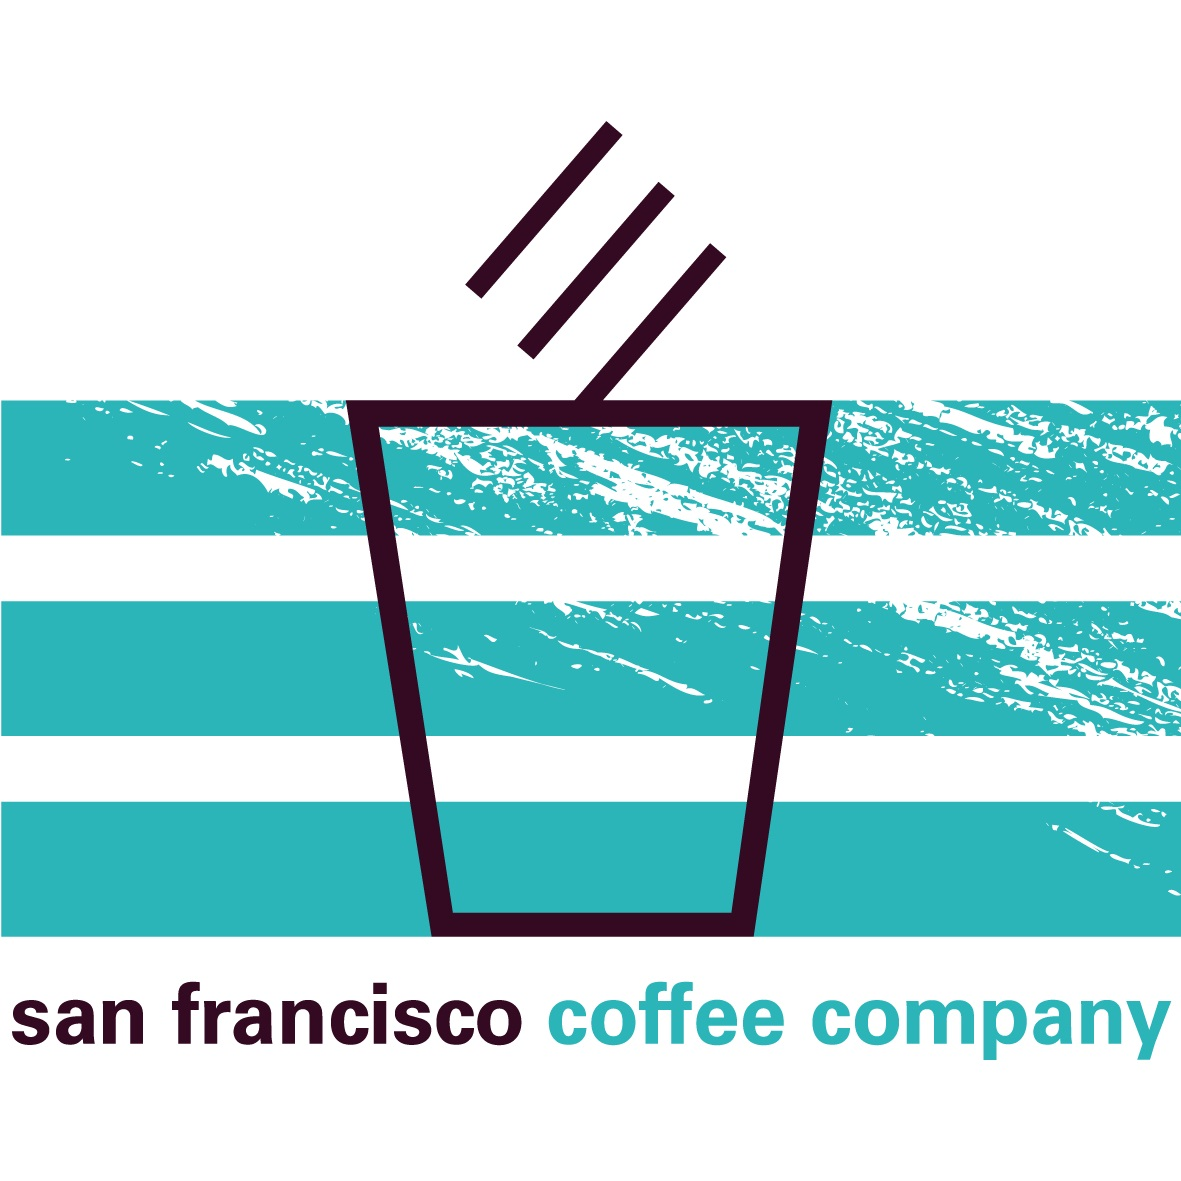 san francisco coffee company Free business profile for san francisco bay coffee at 1731 aviation blvd, lincoln, ca, 95648-9317, us, this business can be reached at (510) 638-1300.